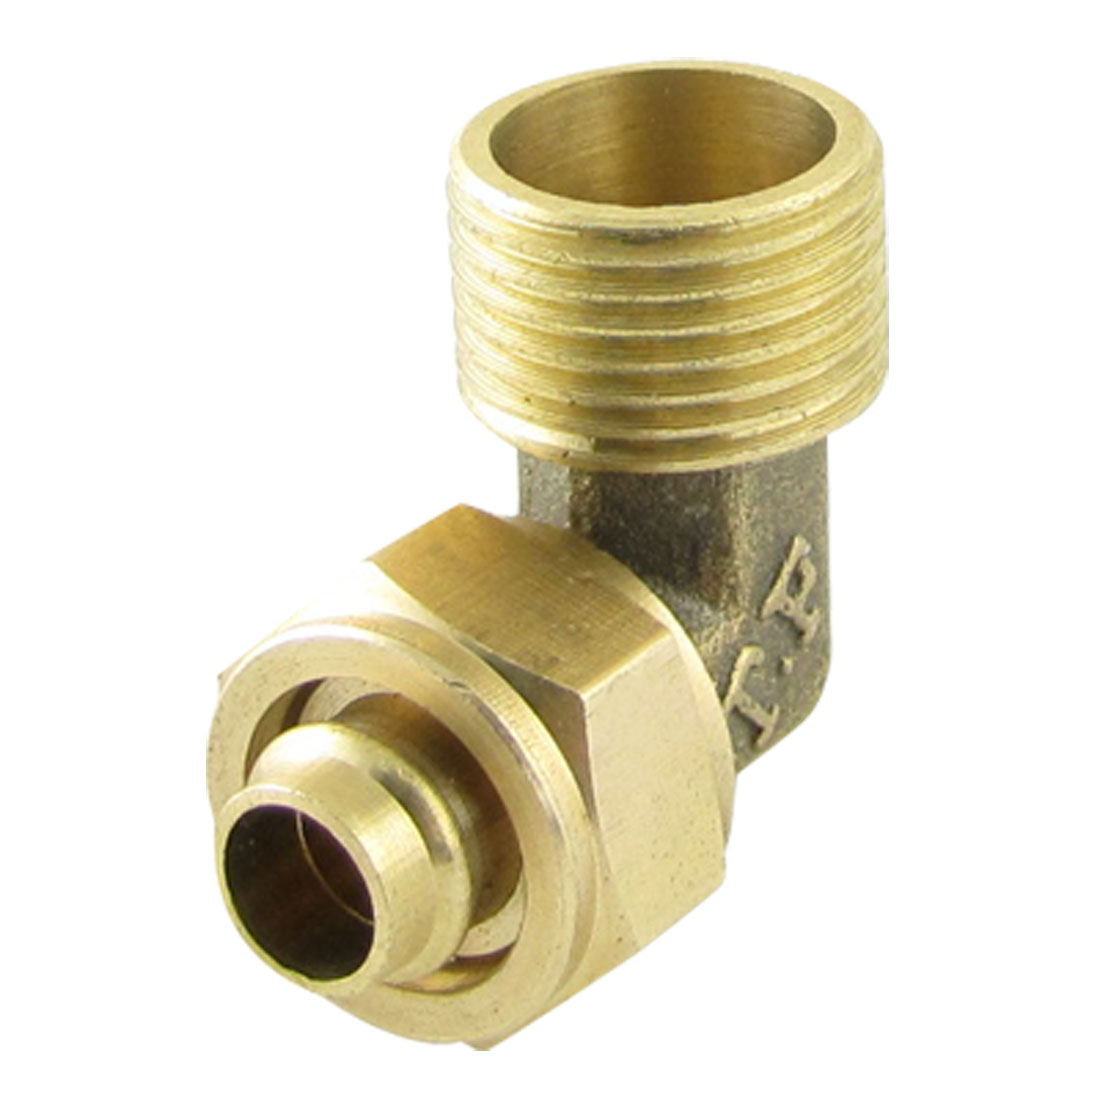 Brass 8 x 12mm Pneumatic Pipe Tube Quick Coupler Elbow Connector